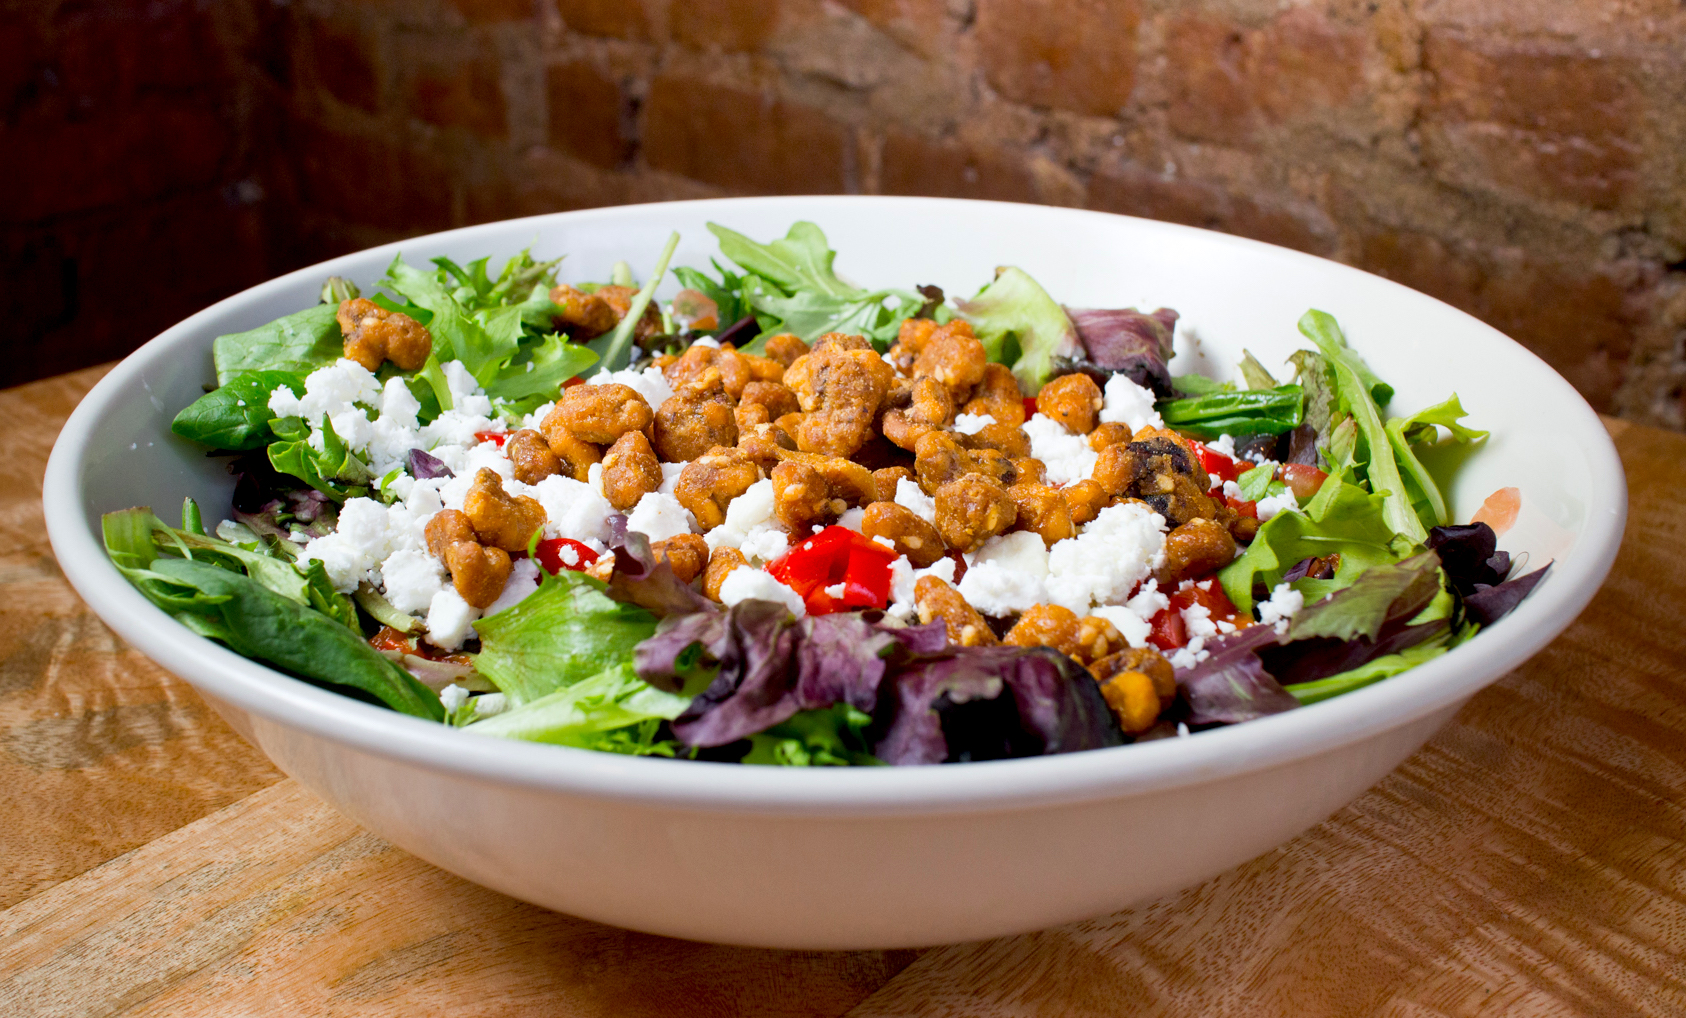 A salad with some of Flatbread Grill's famous toppings.